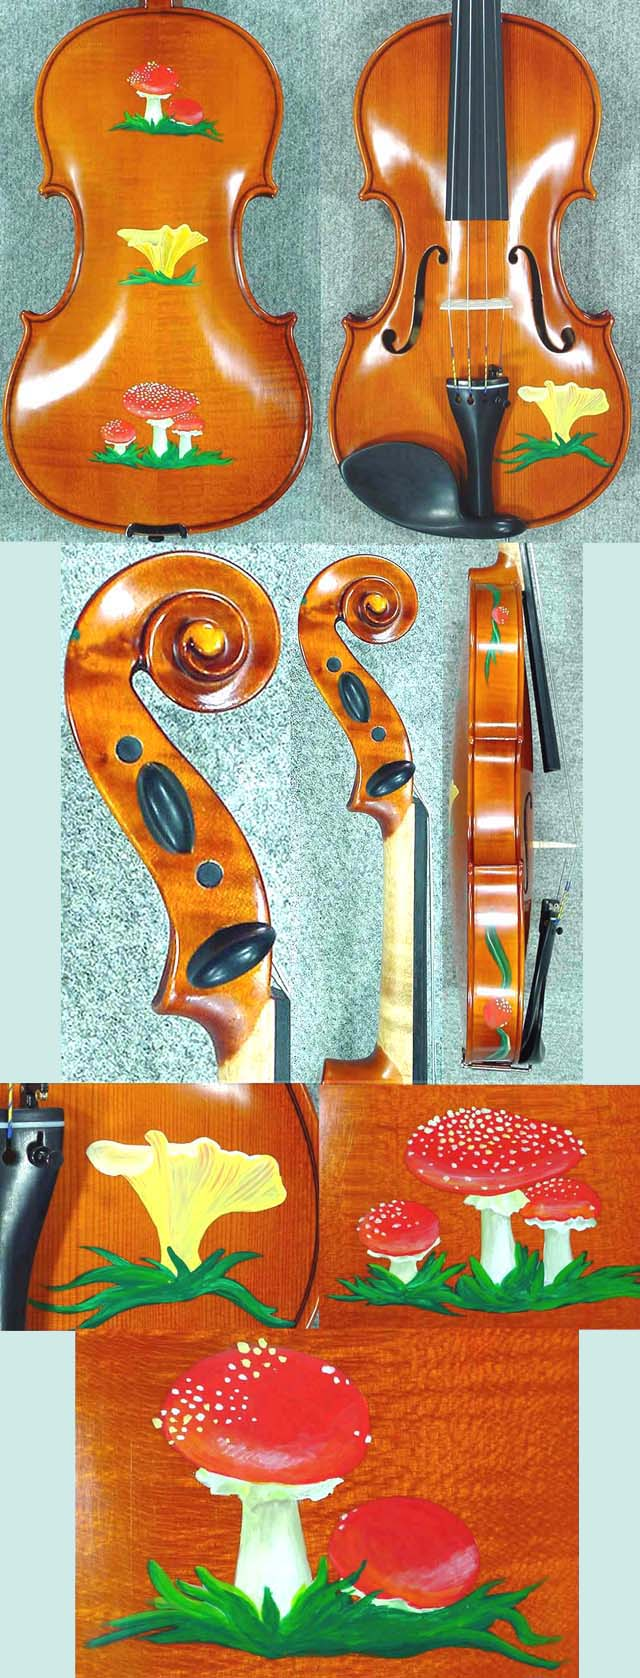 4/4 WORKSHOP 'GEMS 1' Mashrooms Violin